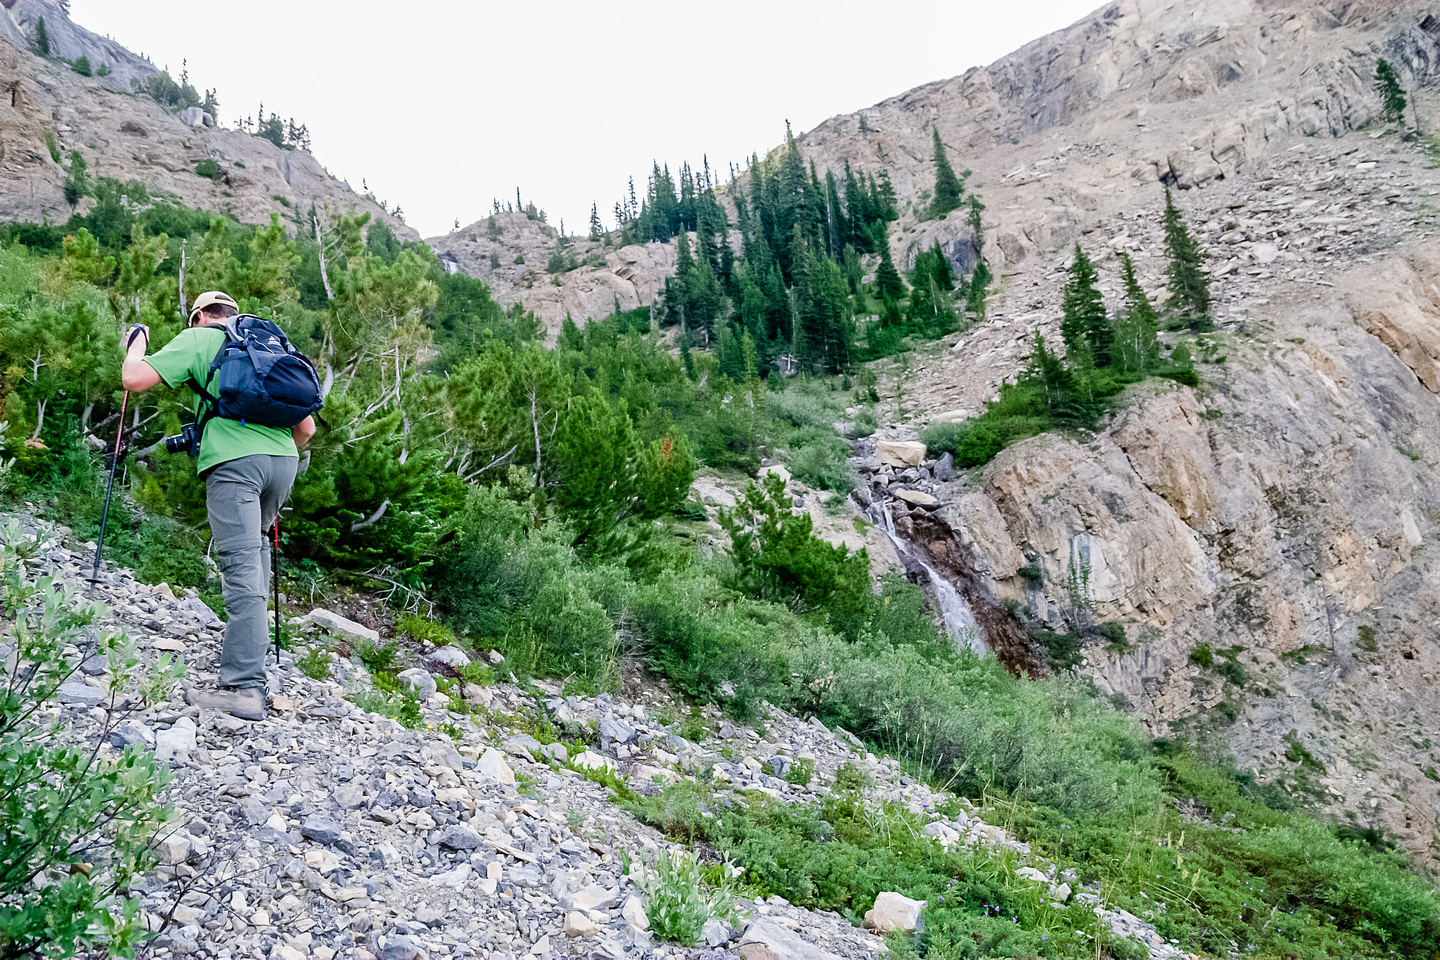 After following the trail through the trees lower down, we are now crossing the waterfalls on climber's left.